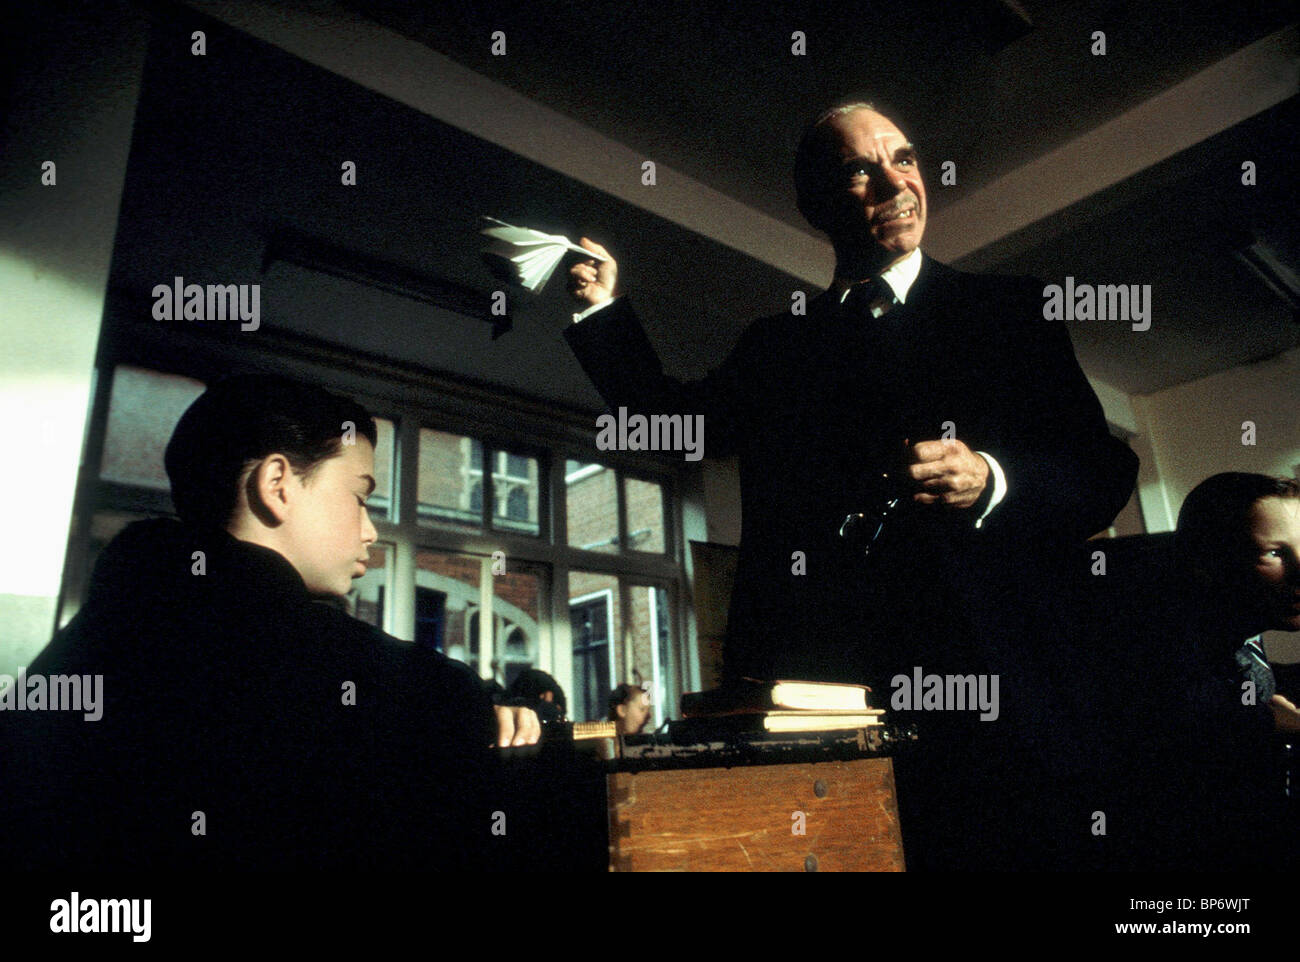 ALEX MCAVOY PINK FLOYD THE WALL (1982) - Stock Image